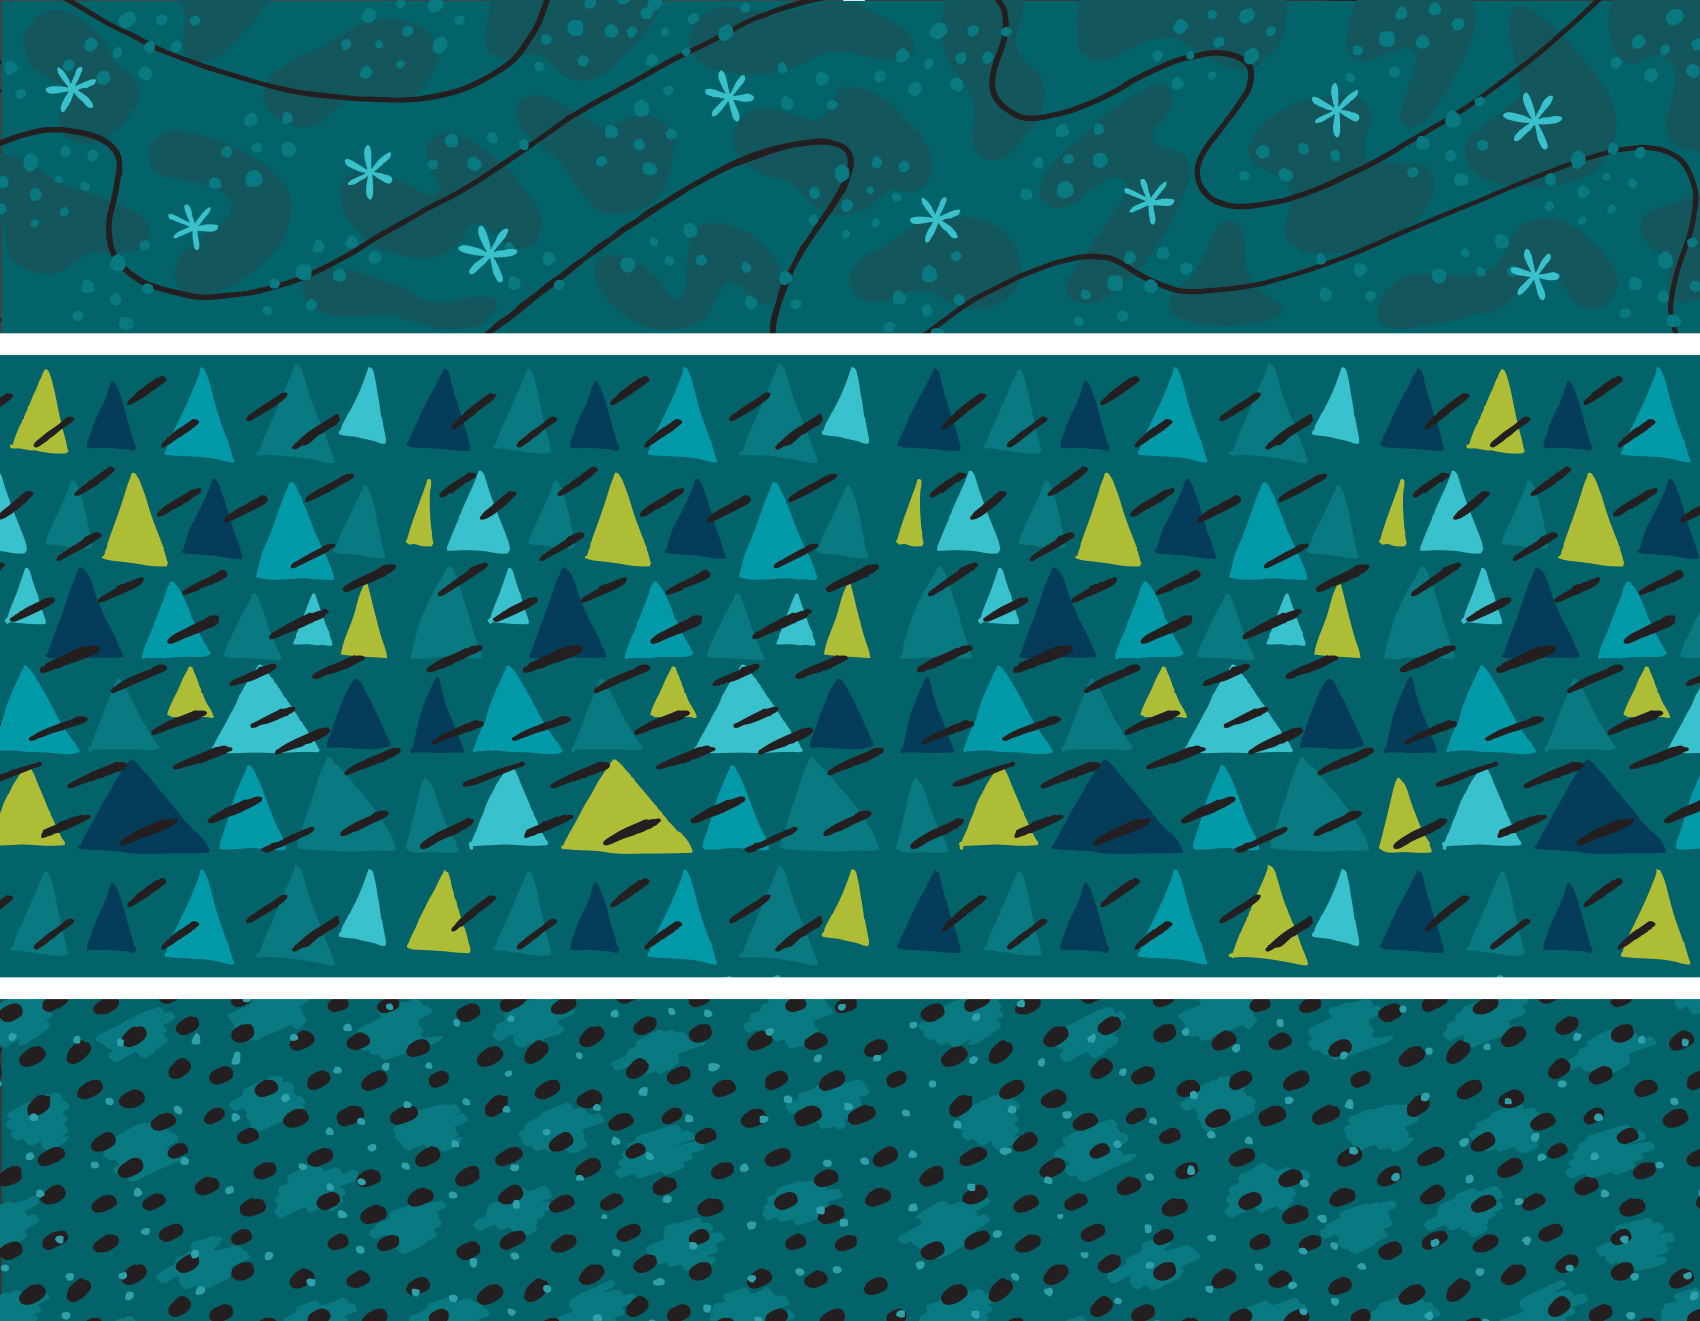 pattern & illustration tests for Umpqua bank: landscape patterns